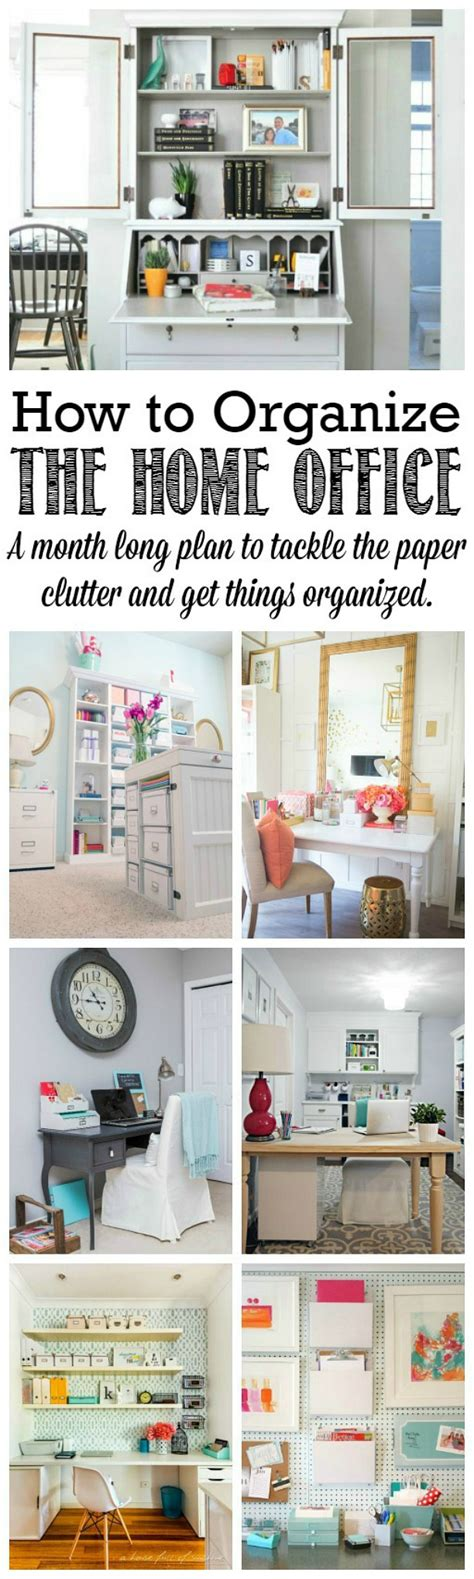 the organized home the 2016 household organization diet clean and scentsible